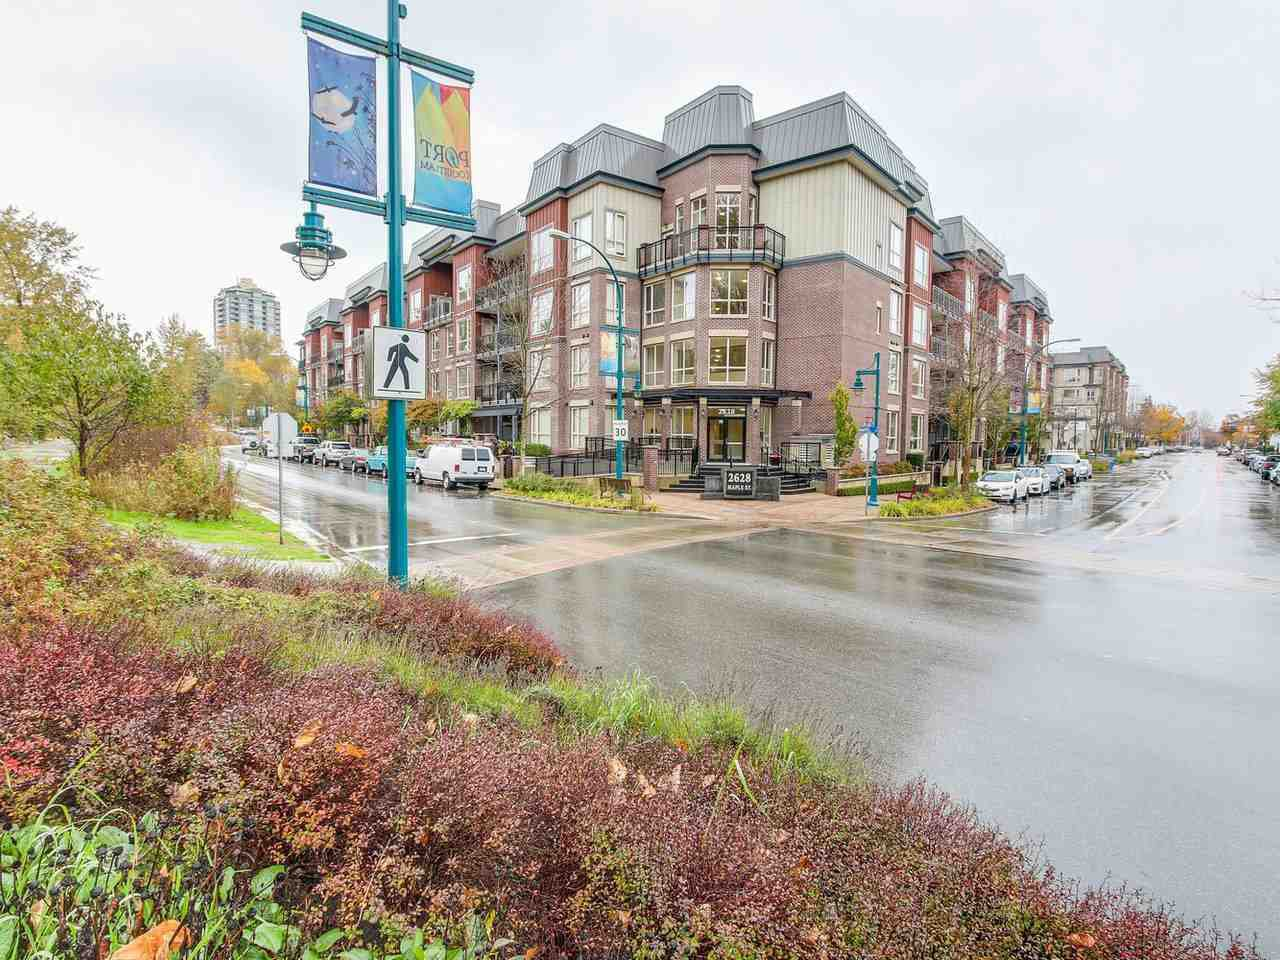 Main Photo: 324 2628 MAPLE Street in Port Coquitlam: Central Pt Coquitlam Condo for sale : MLS®# R2407960